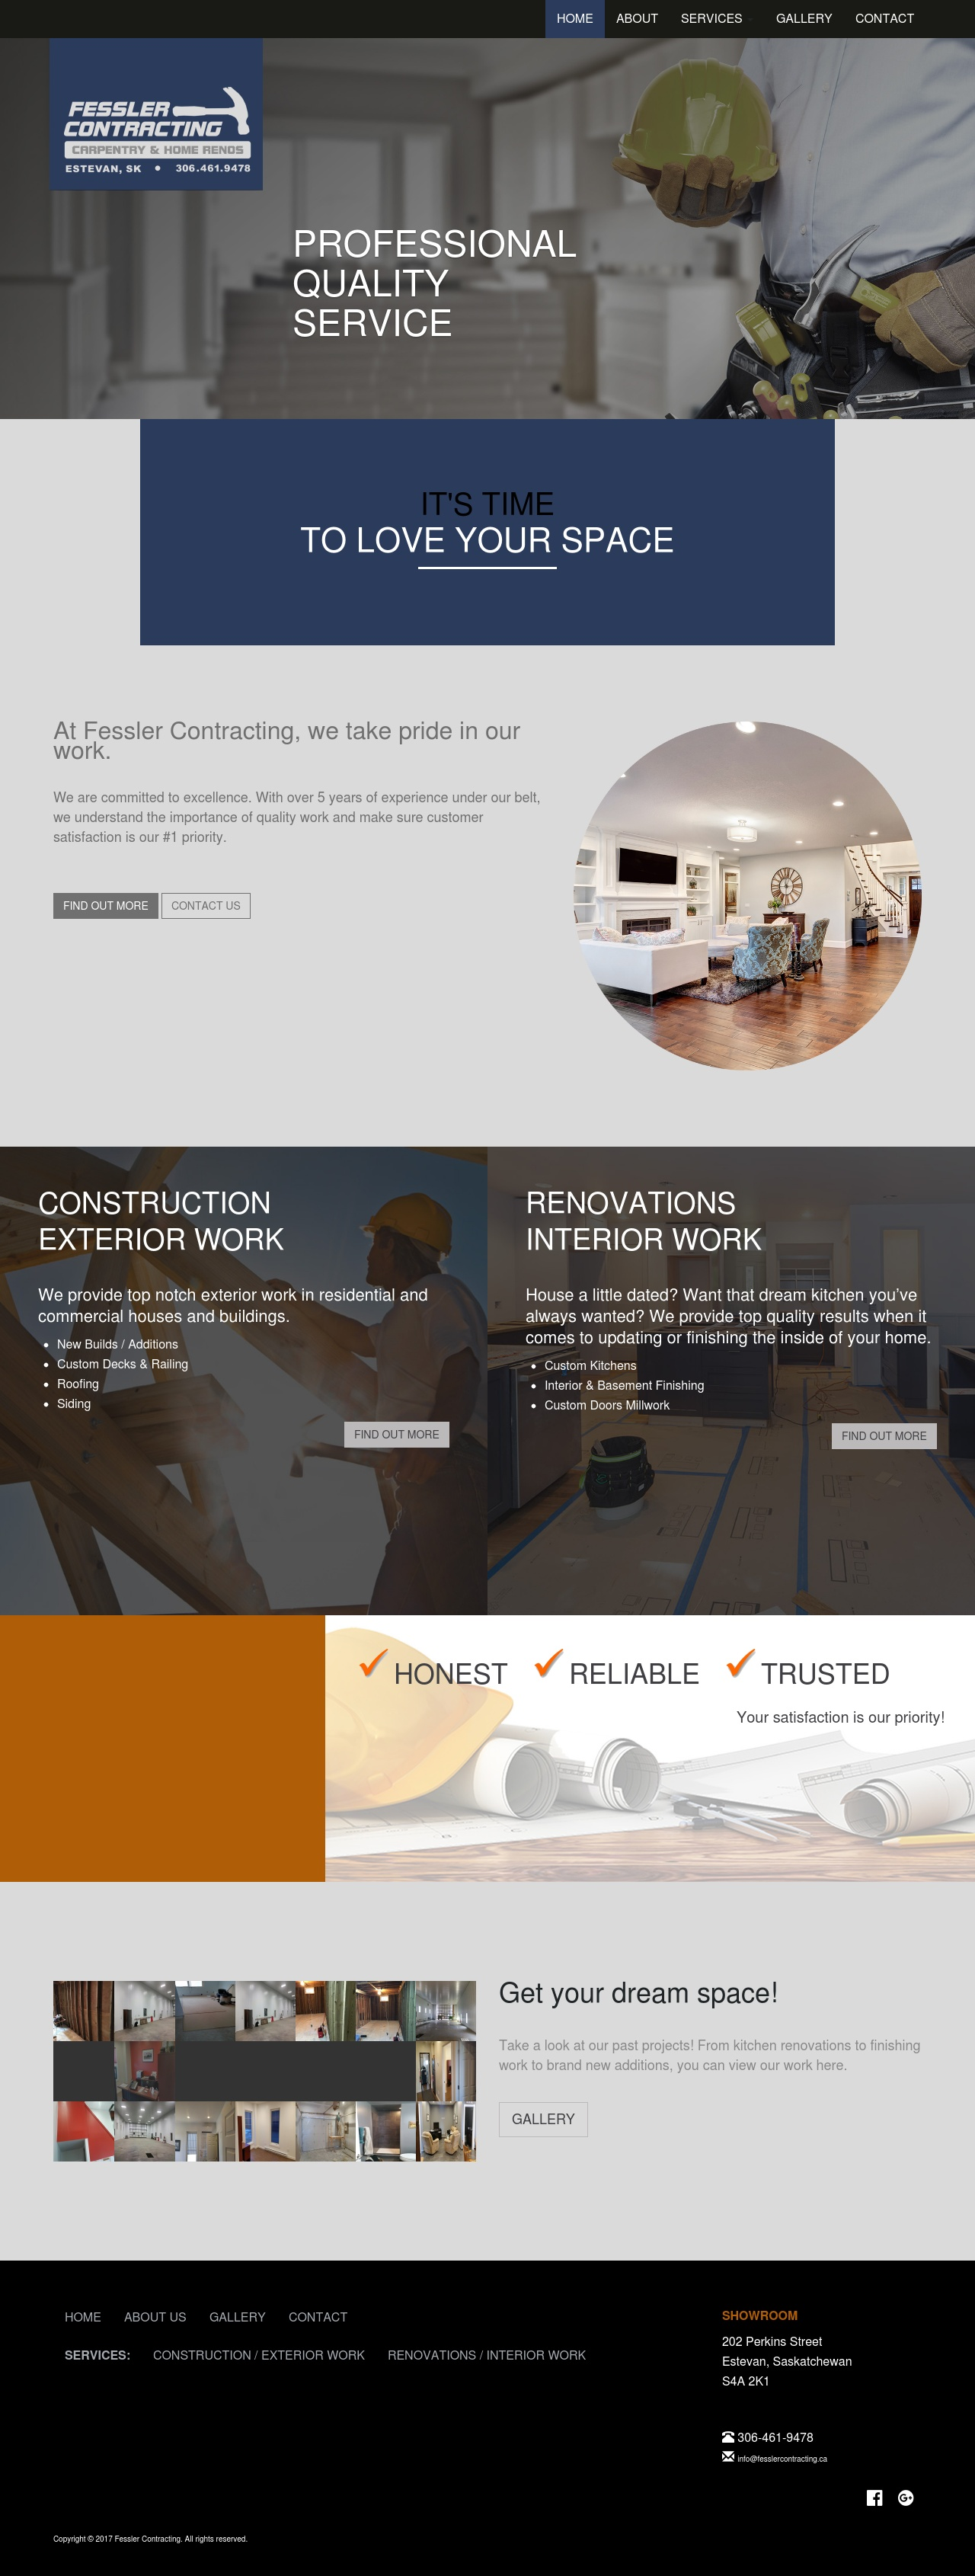 DMS Services Website Portfolio - Fessler Contracting.